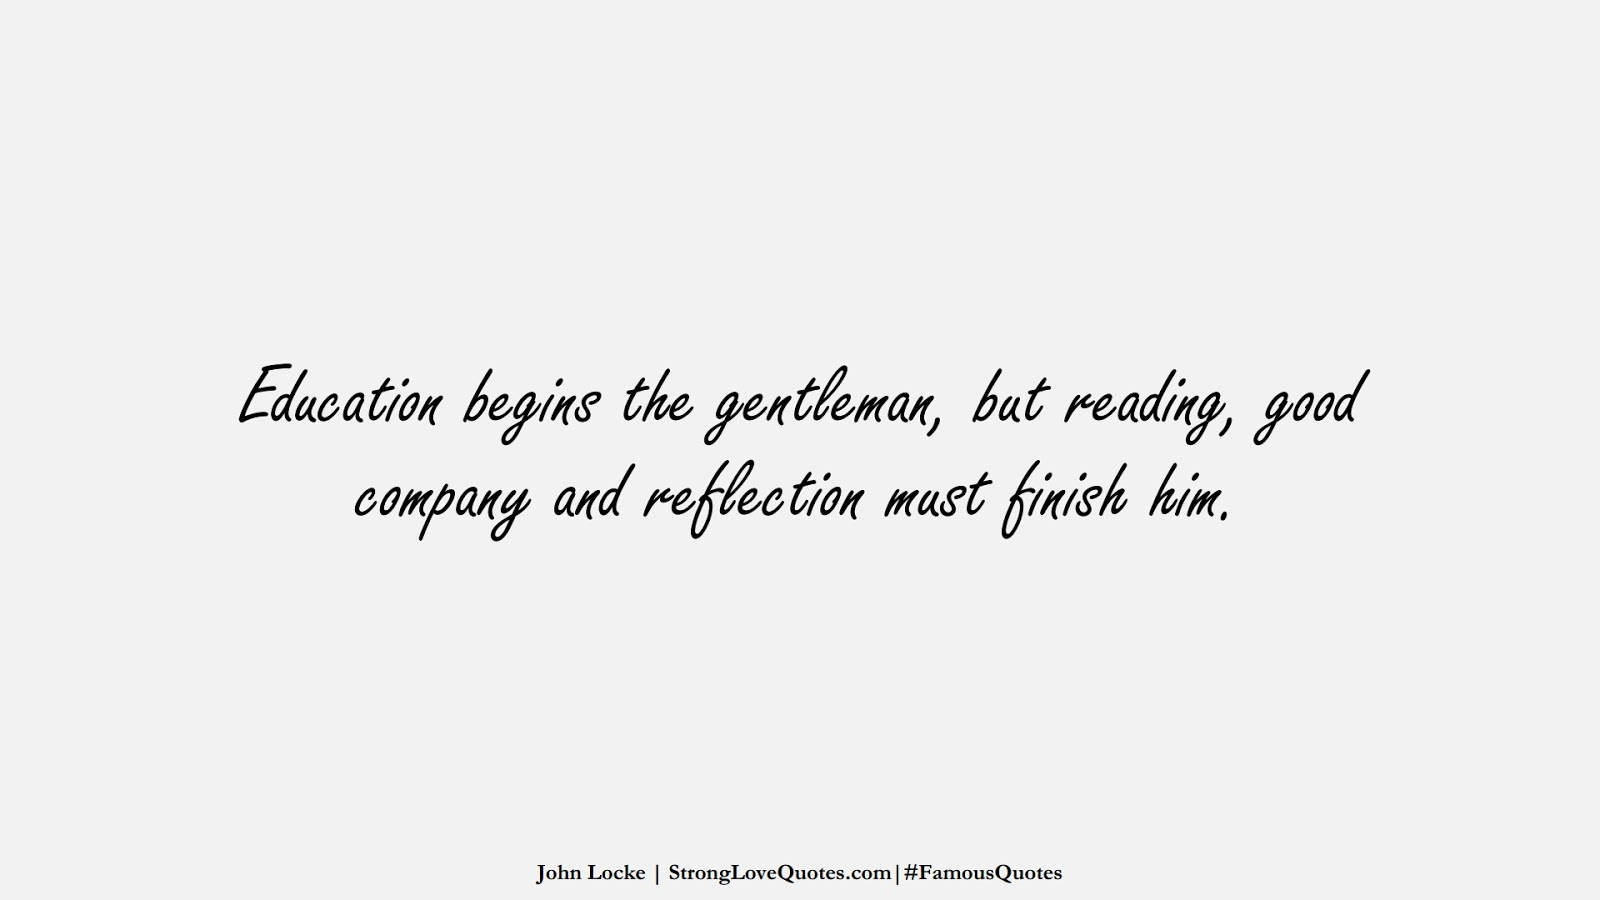 Education begins the gentleman, but reading, good company and reflection must finish him. (John Locke);  #FamousQuotes